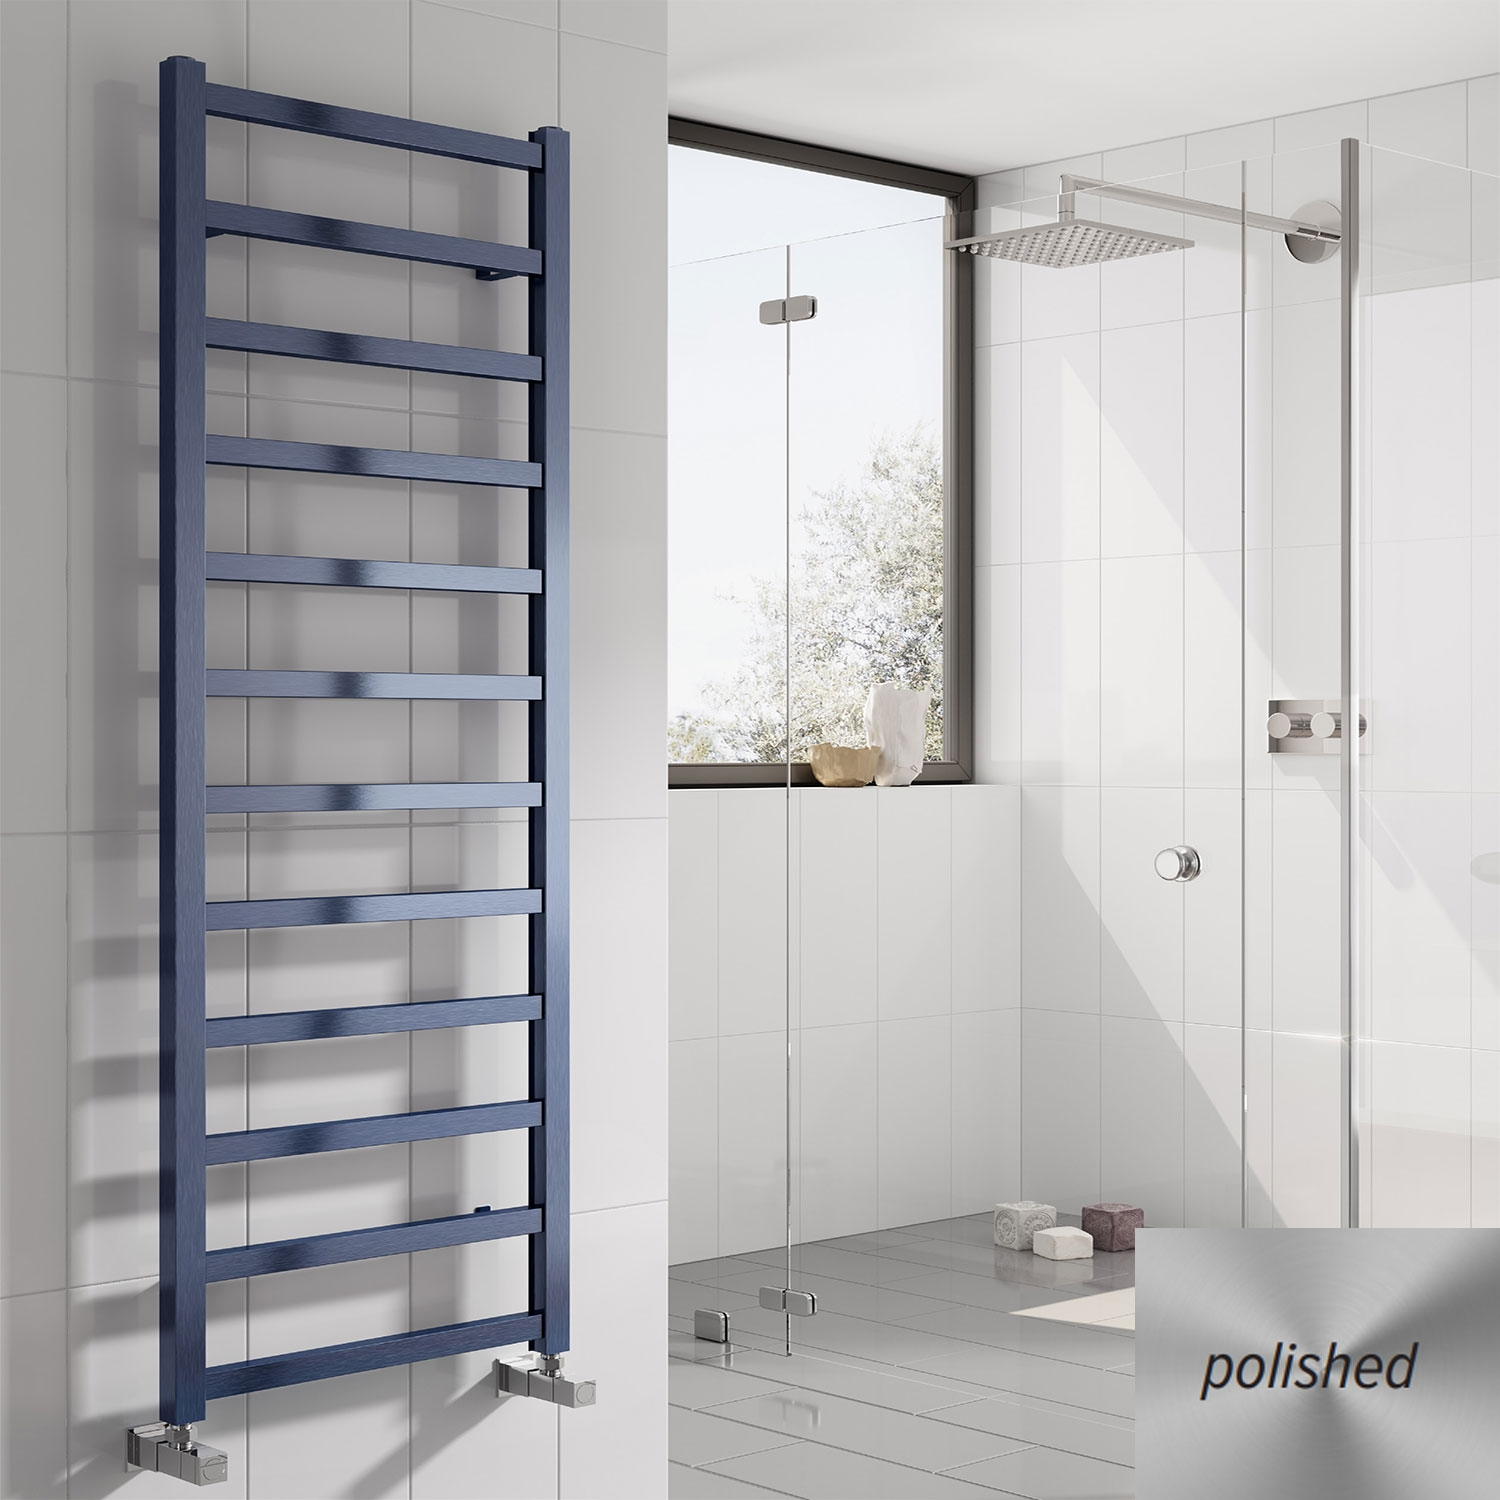 Reina Fano Designer Heated Towel Rail 1500mm H x 485mm W Polished